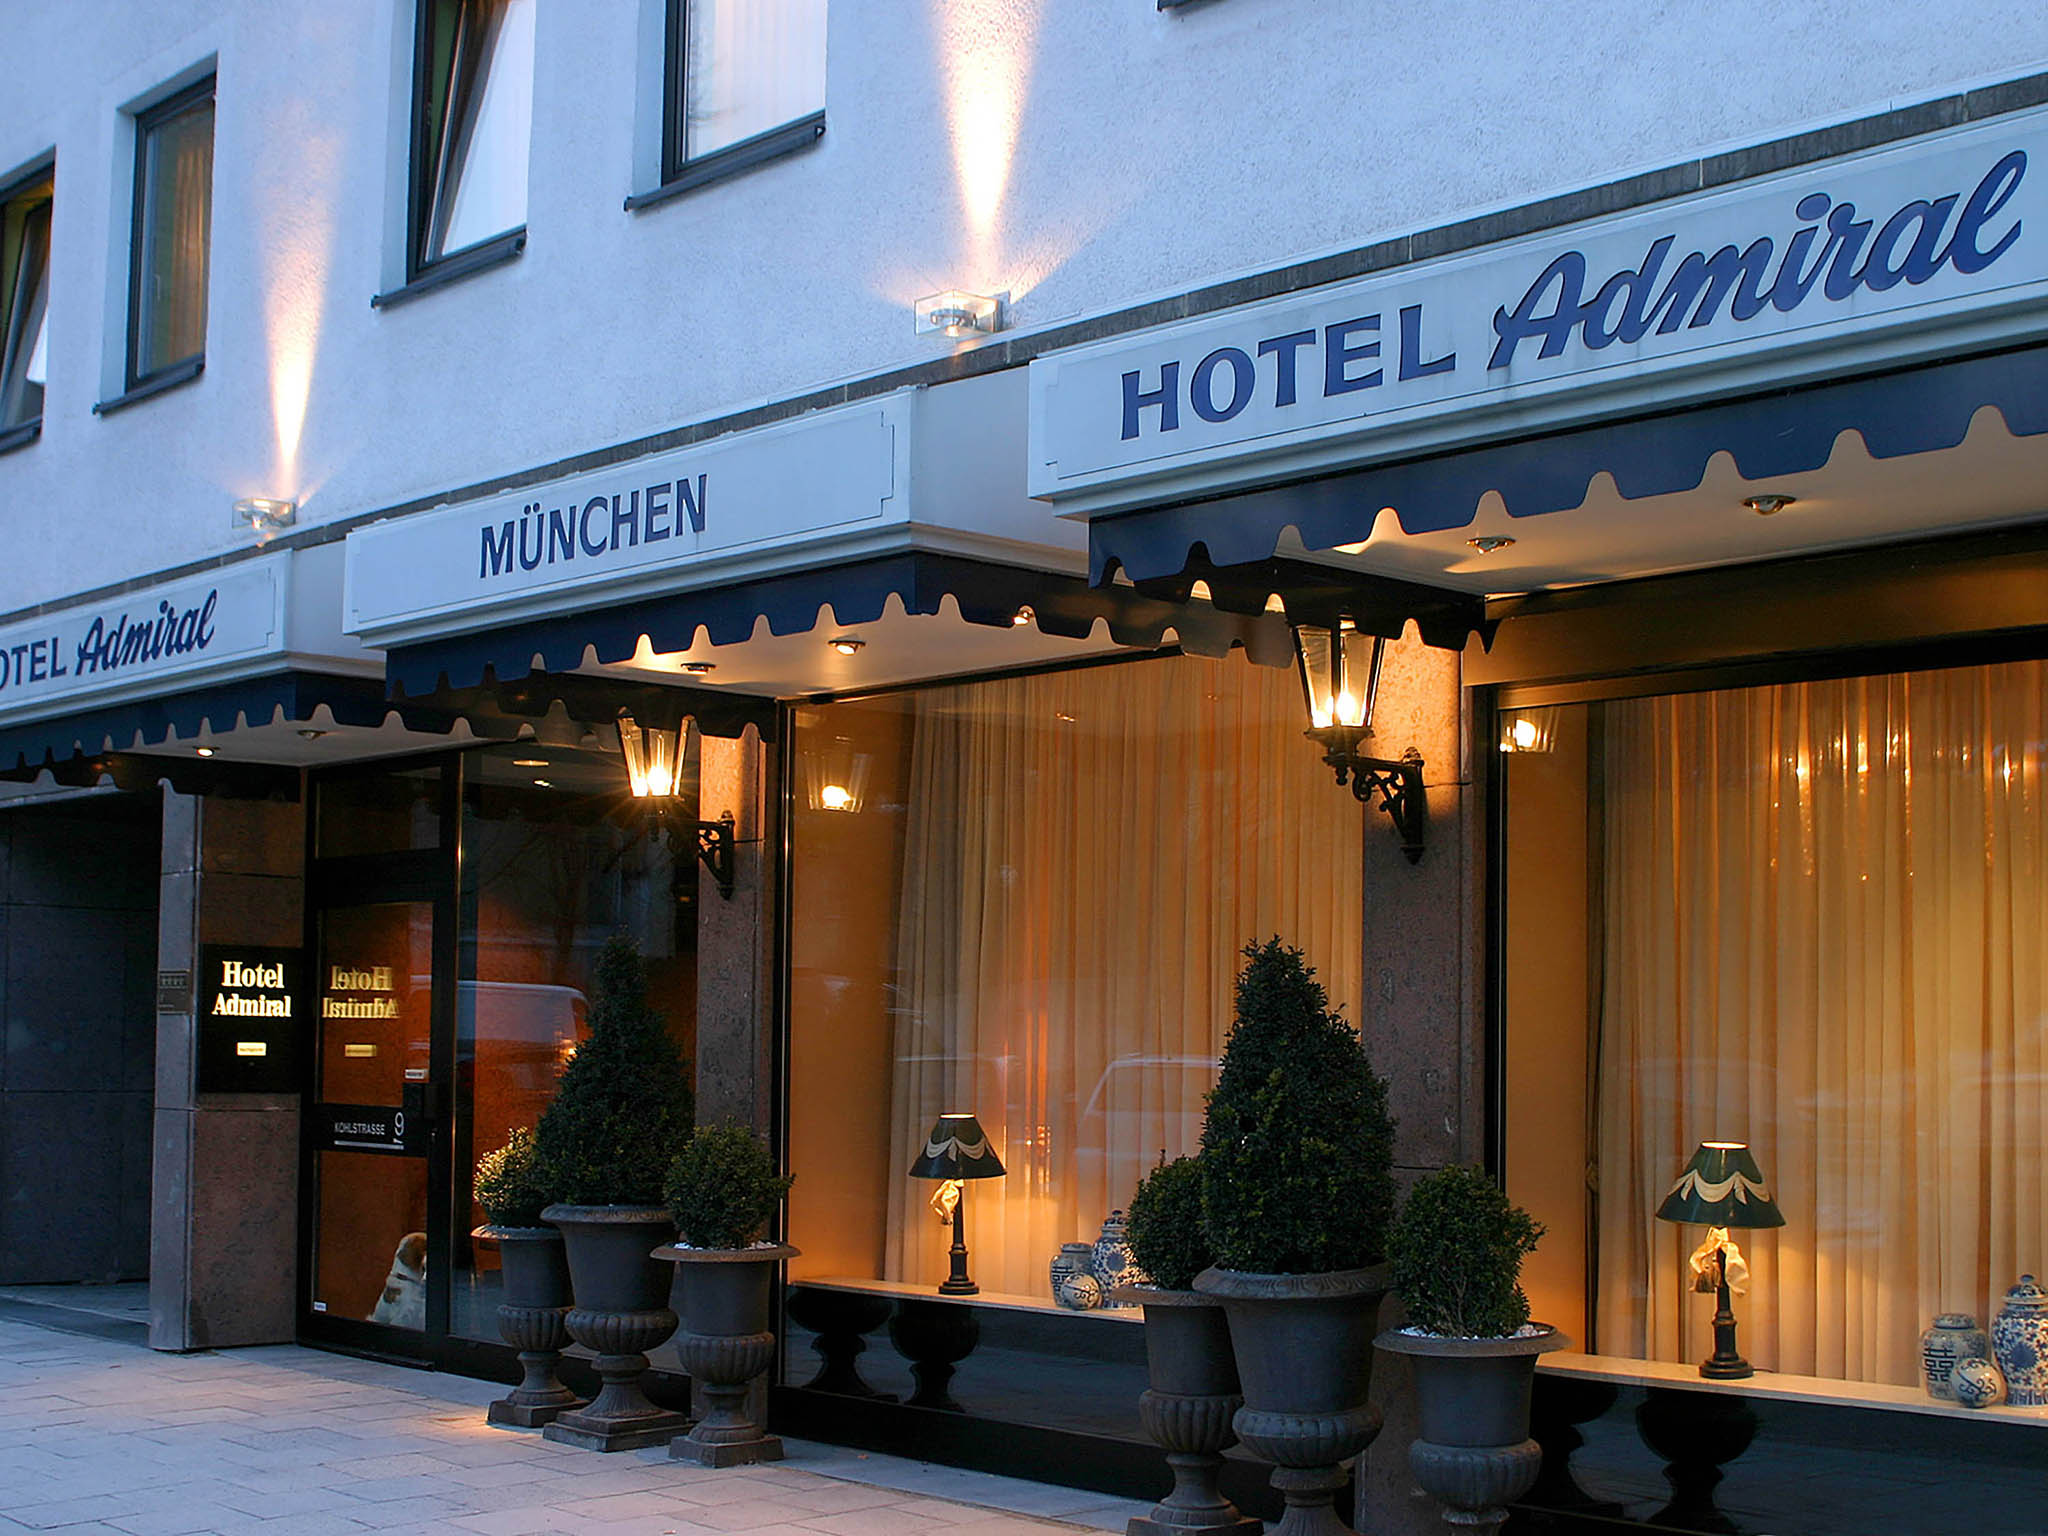 Hotel in munich hotel admiral munchen for Gunstige hotels in munchen